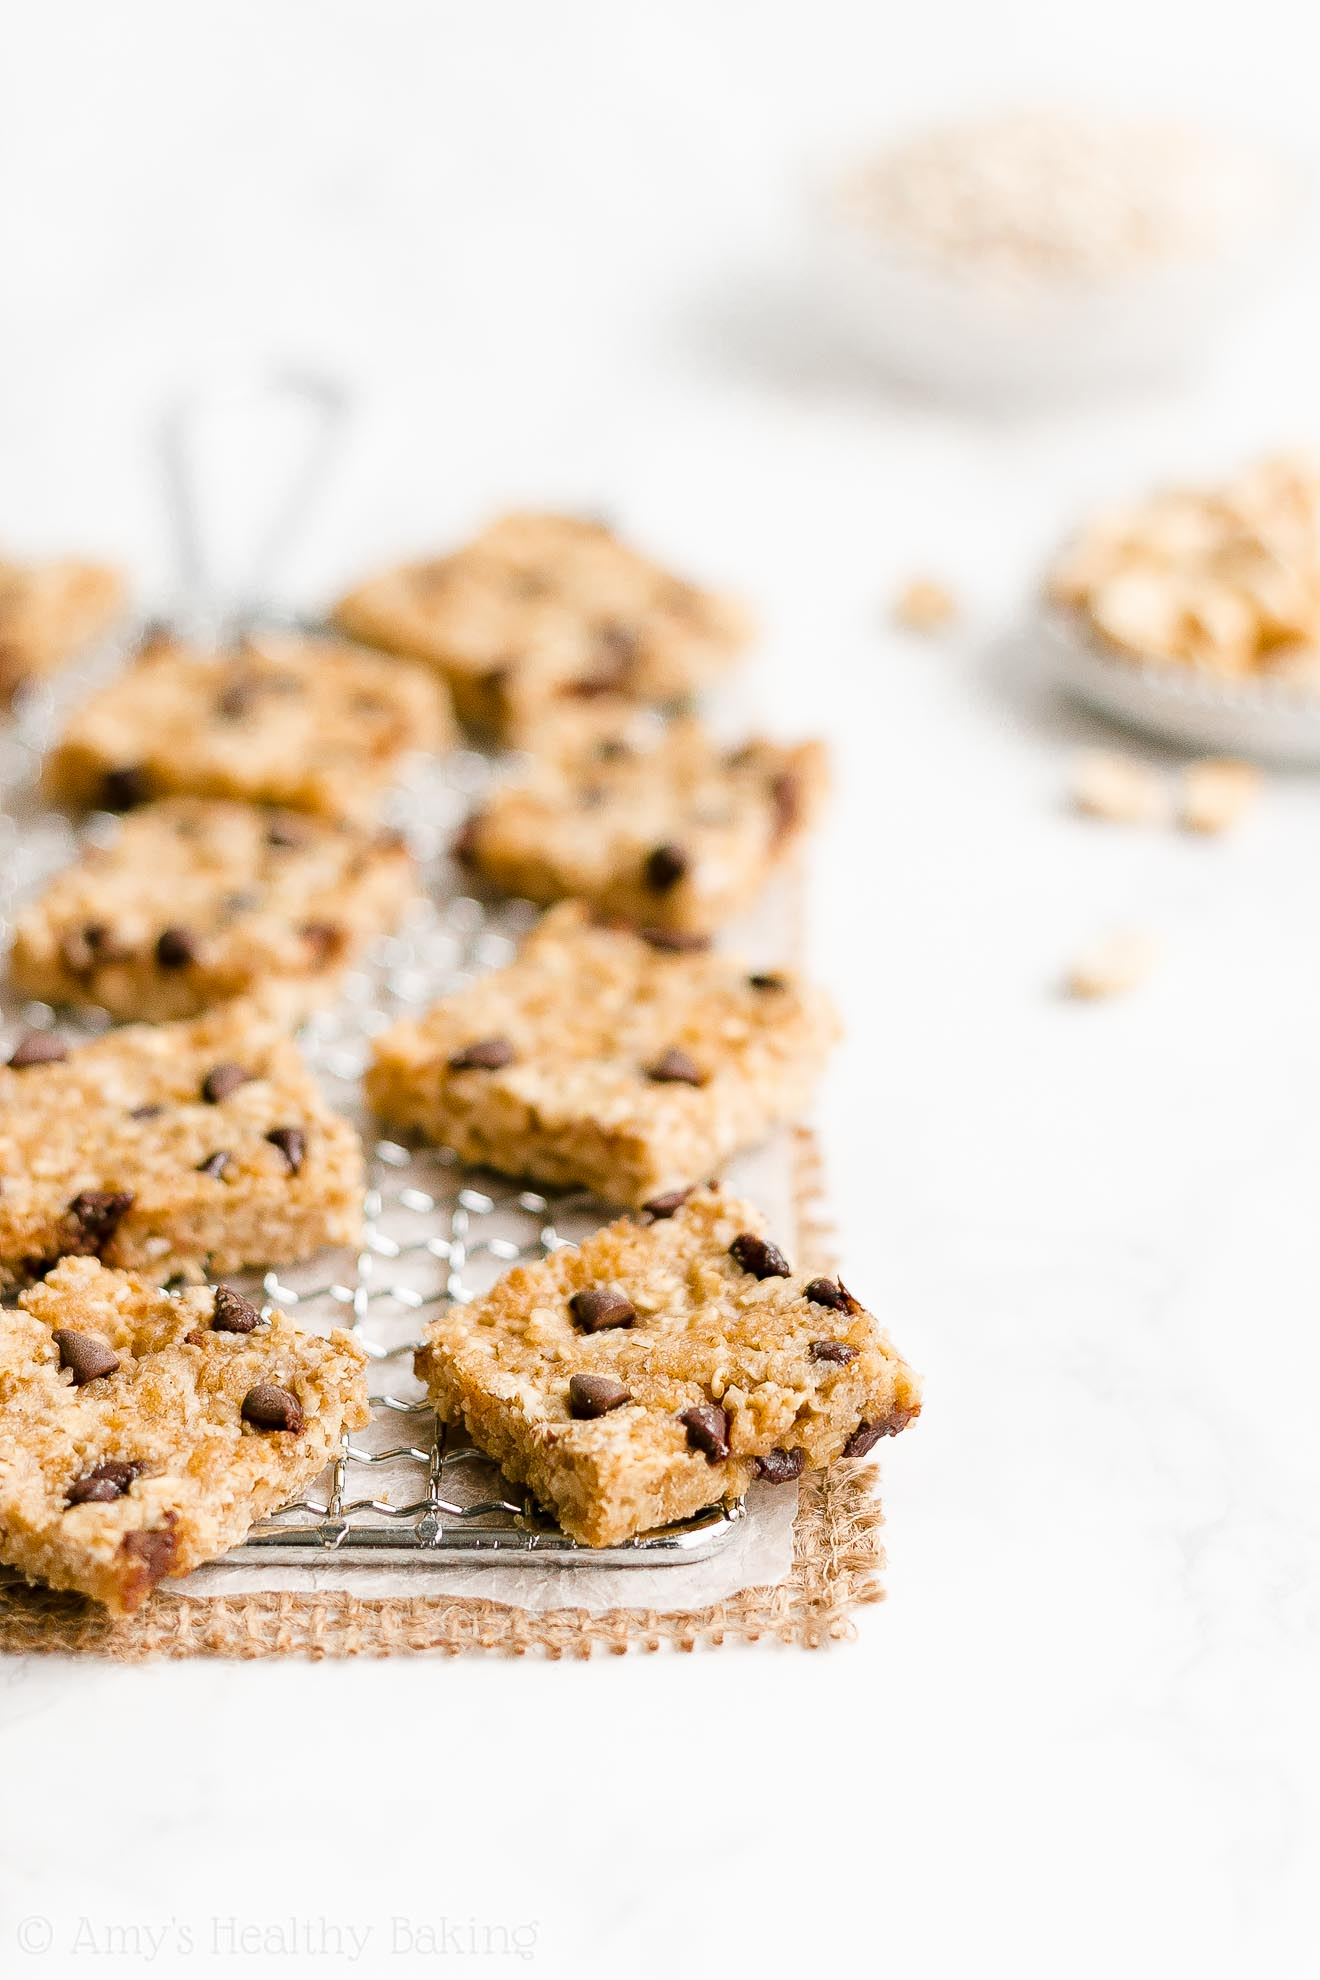 Easy Healthy Clean Eating Gluten Free Chocolate Chip Peanut Butter Granola Bars